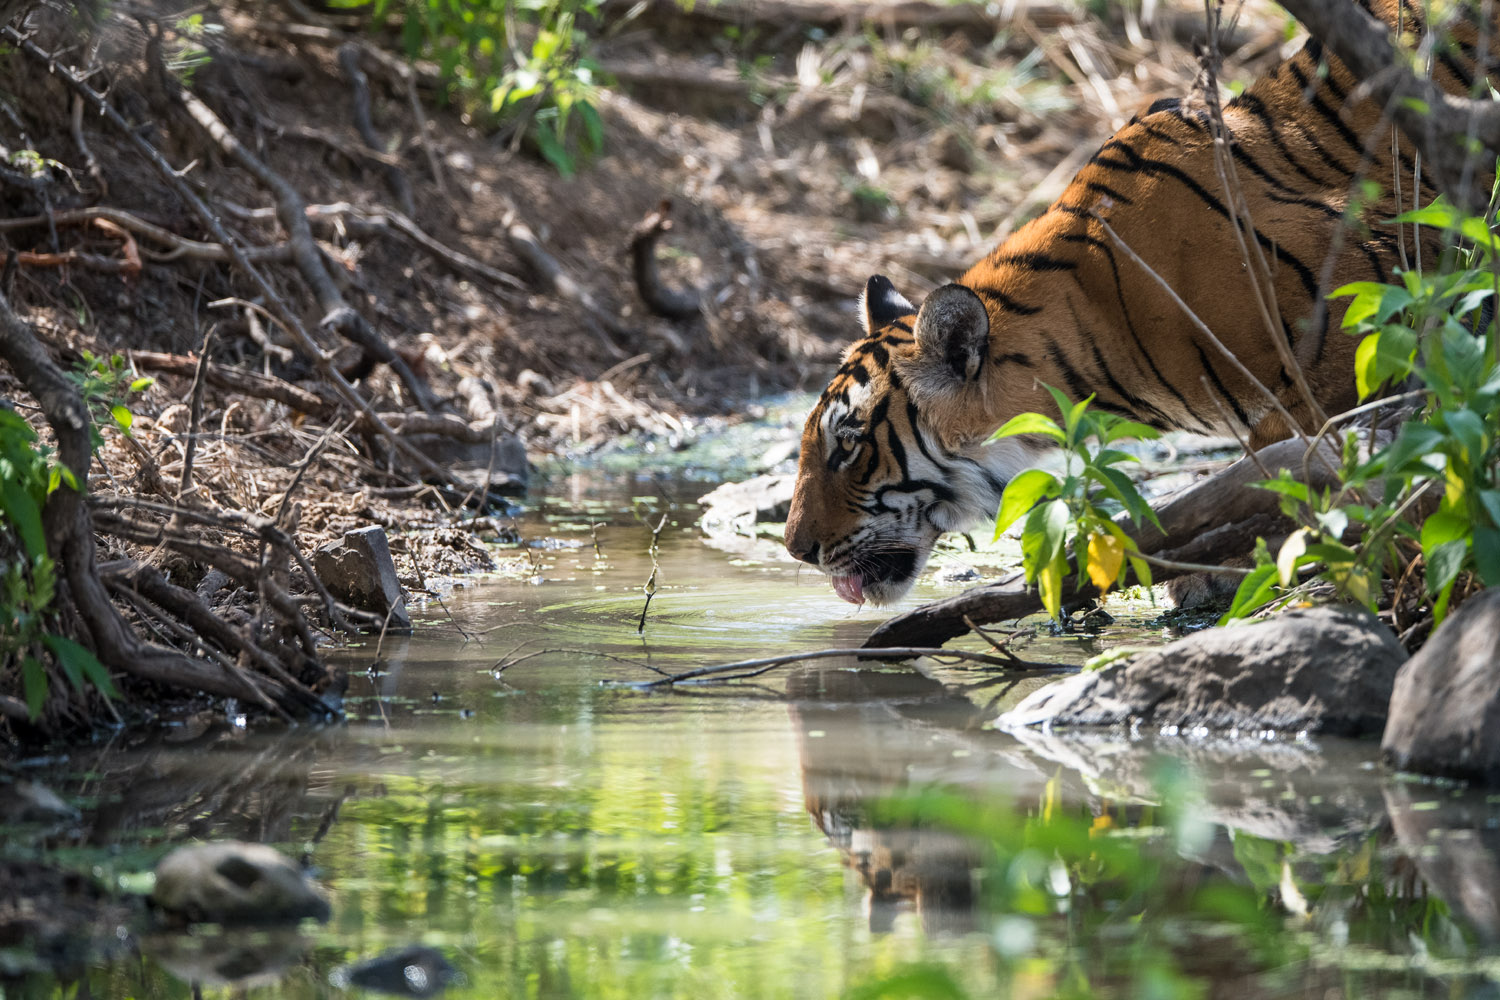 Bengal tigress drinking from stream, Ranthambhore National Park, Rajasthan, India